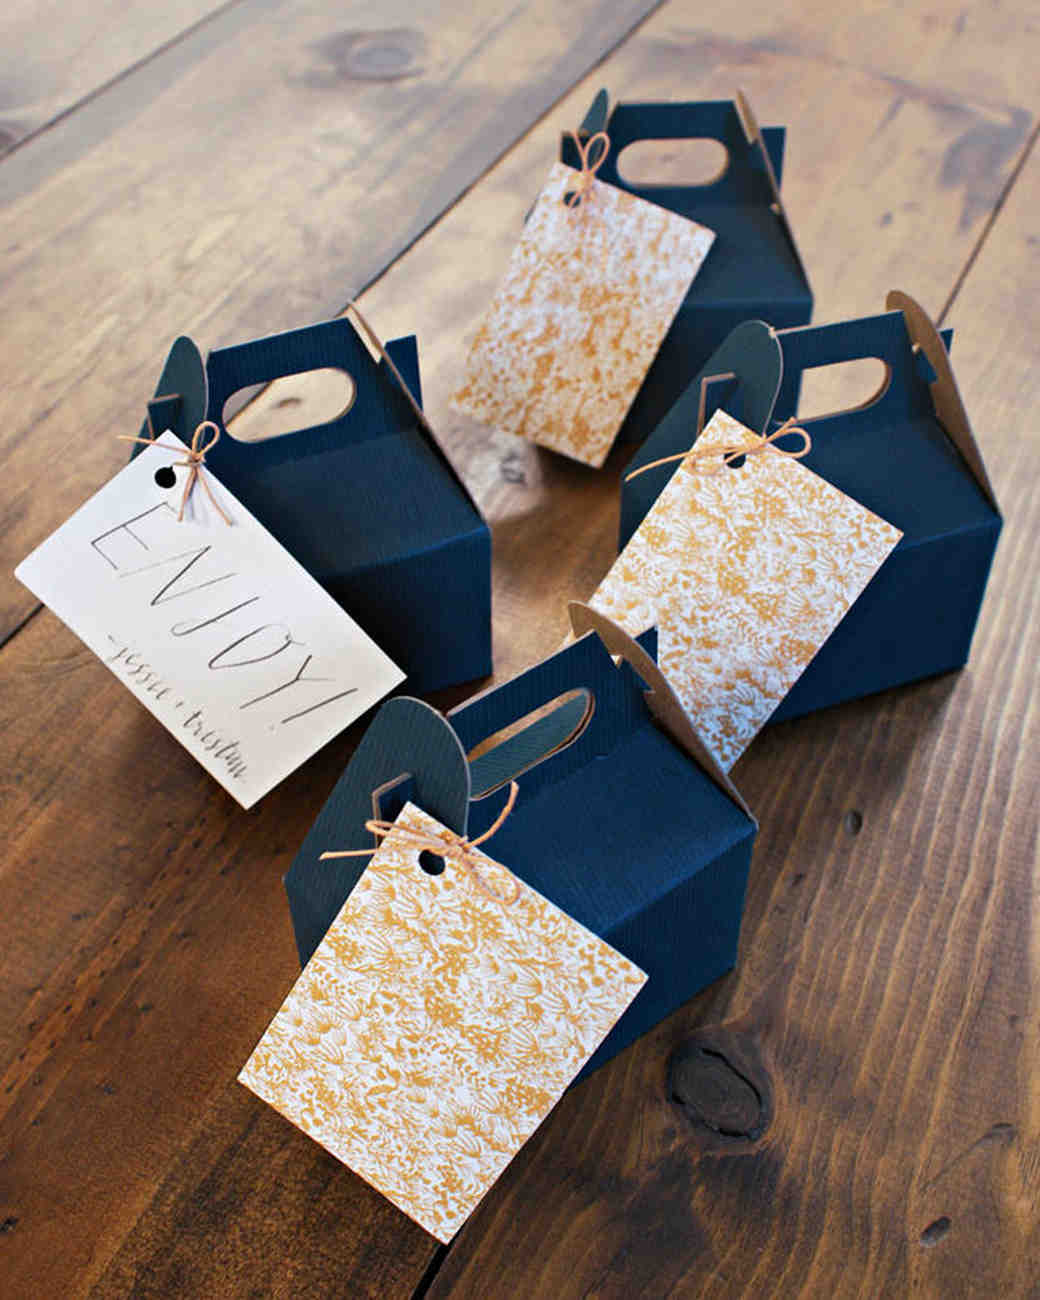 jessie tristan wedding tennessee favors blue boxes